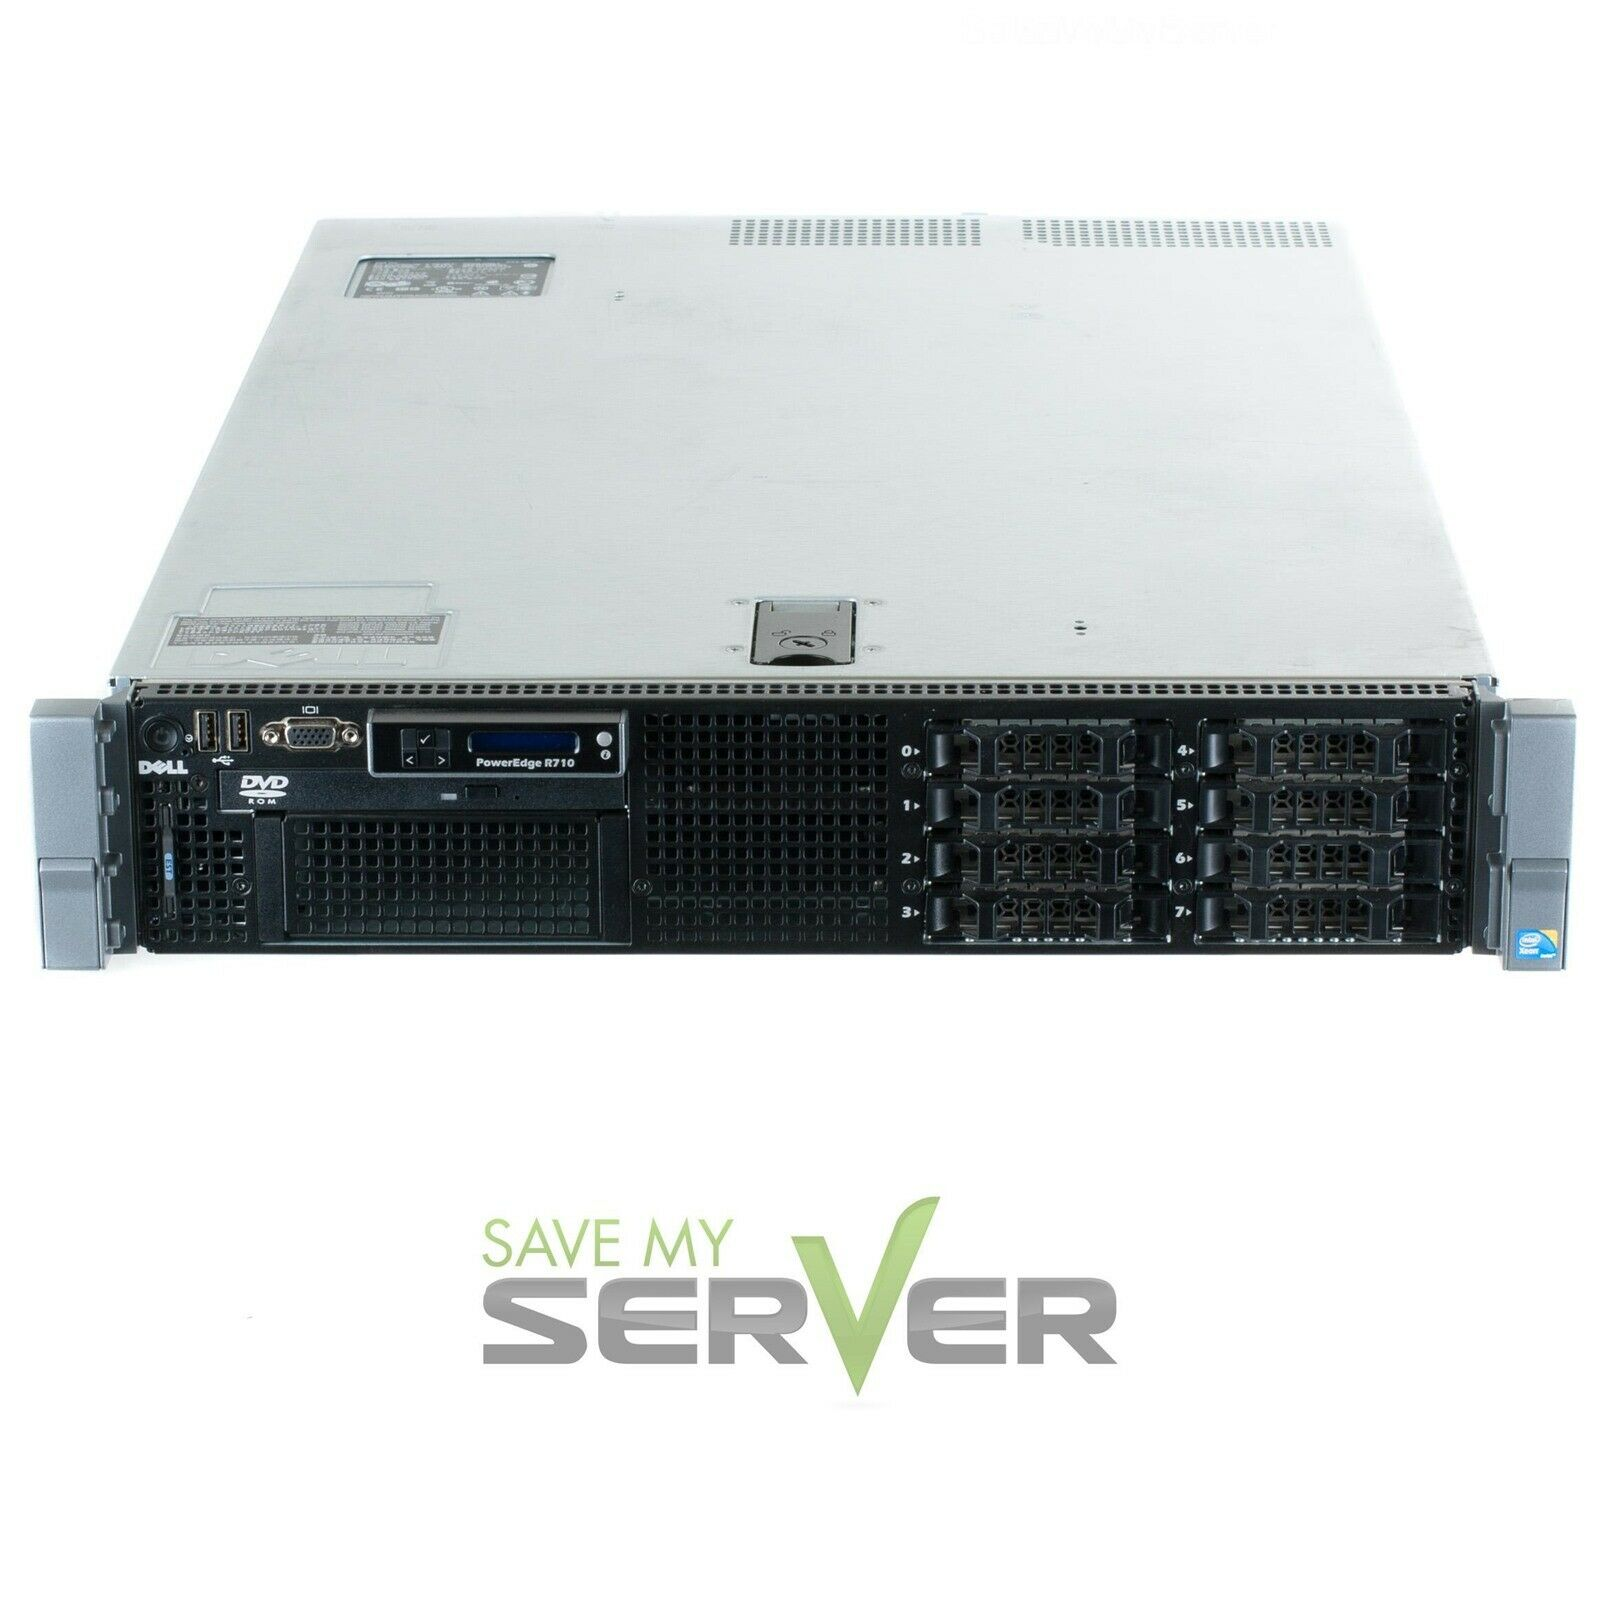 Dell PowerEdge R710 Server 2.26GHz 8-Cores 32GB Ram 4x 300GB 10K SAS